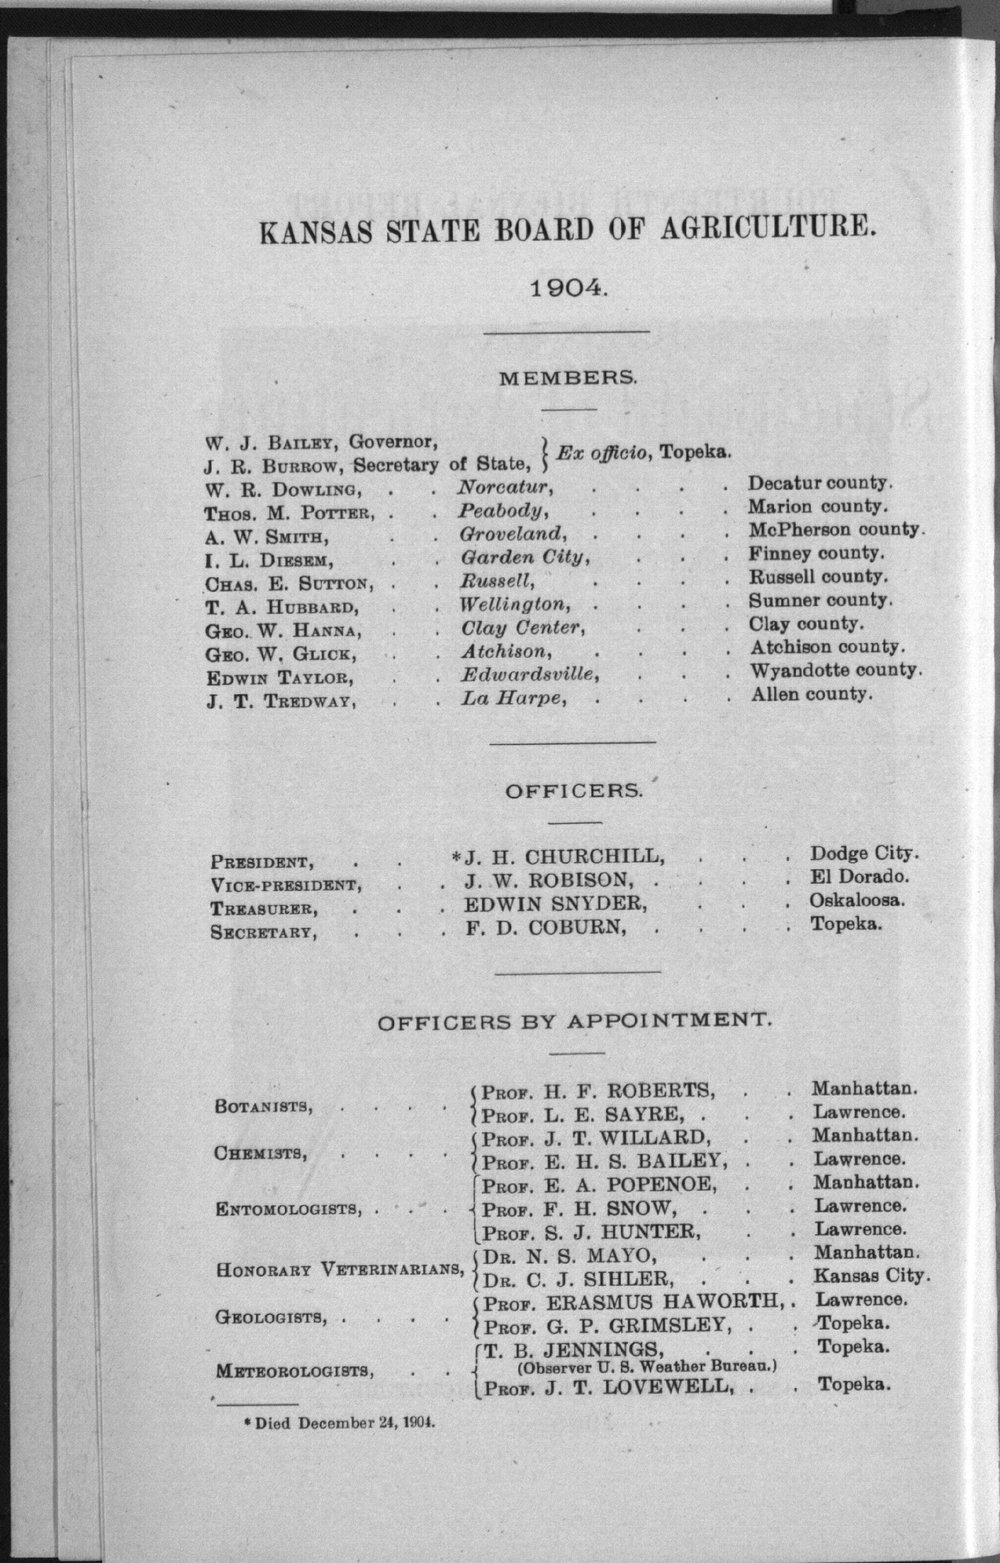 Transactions of the Kansas State Board of Agriculture, 1903-1904 - Board Members